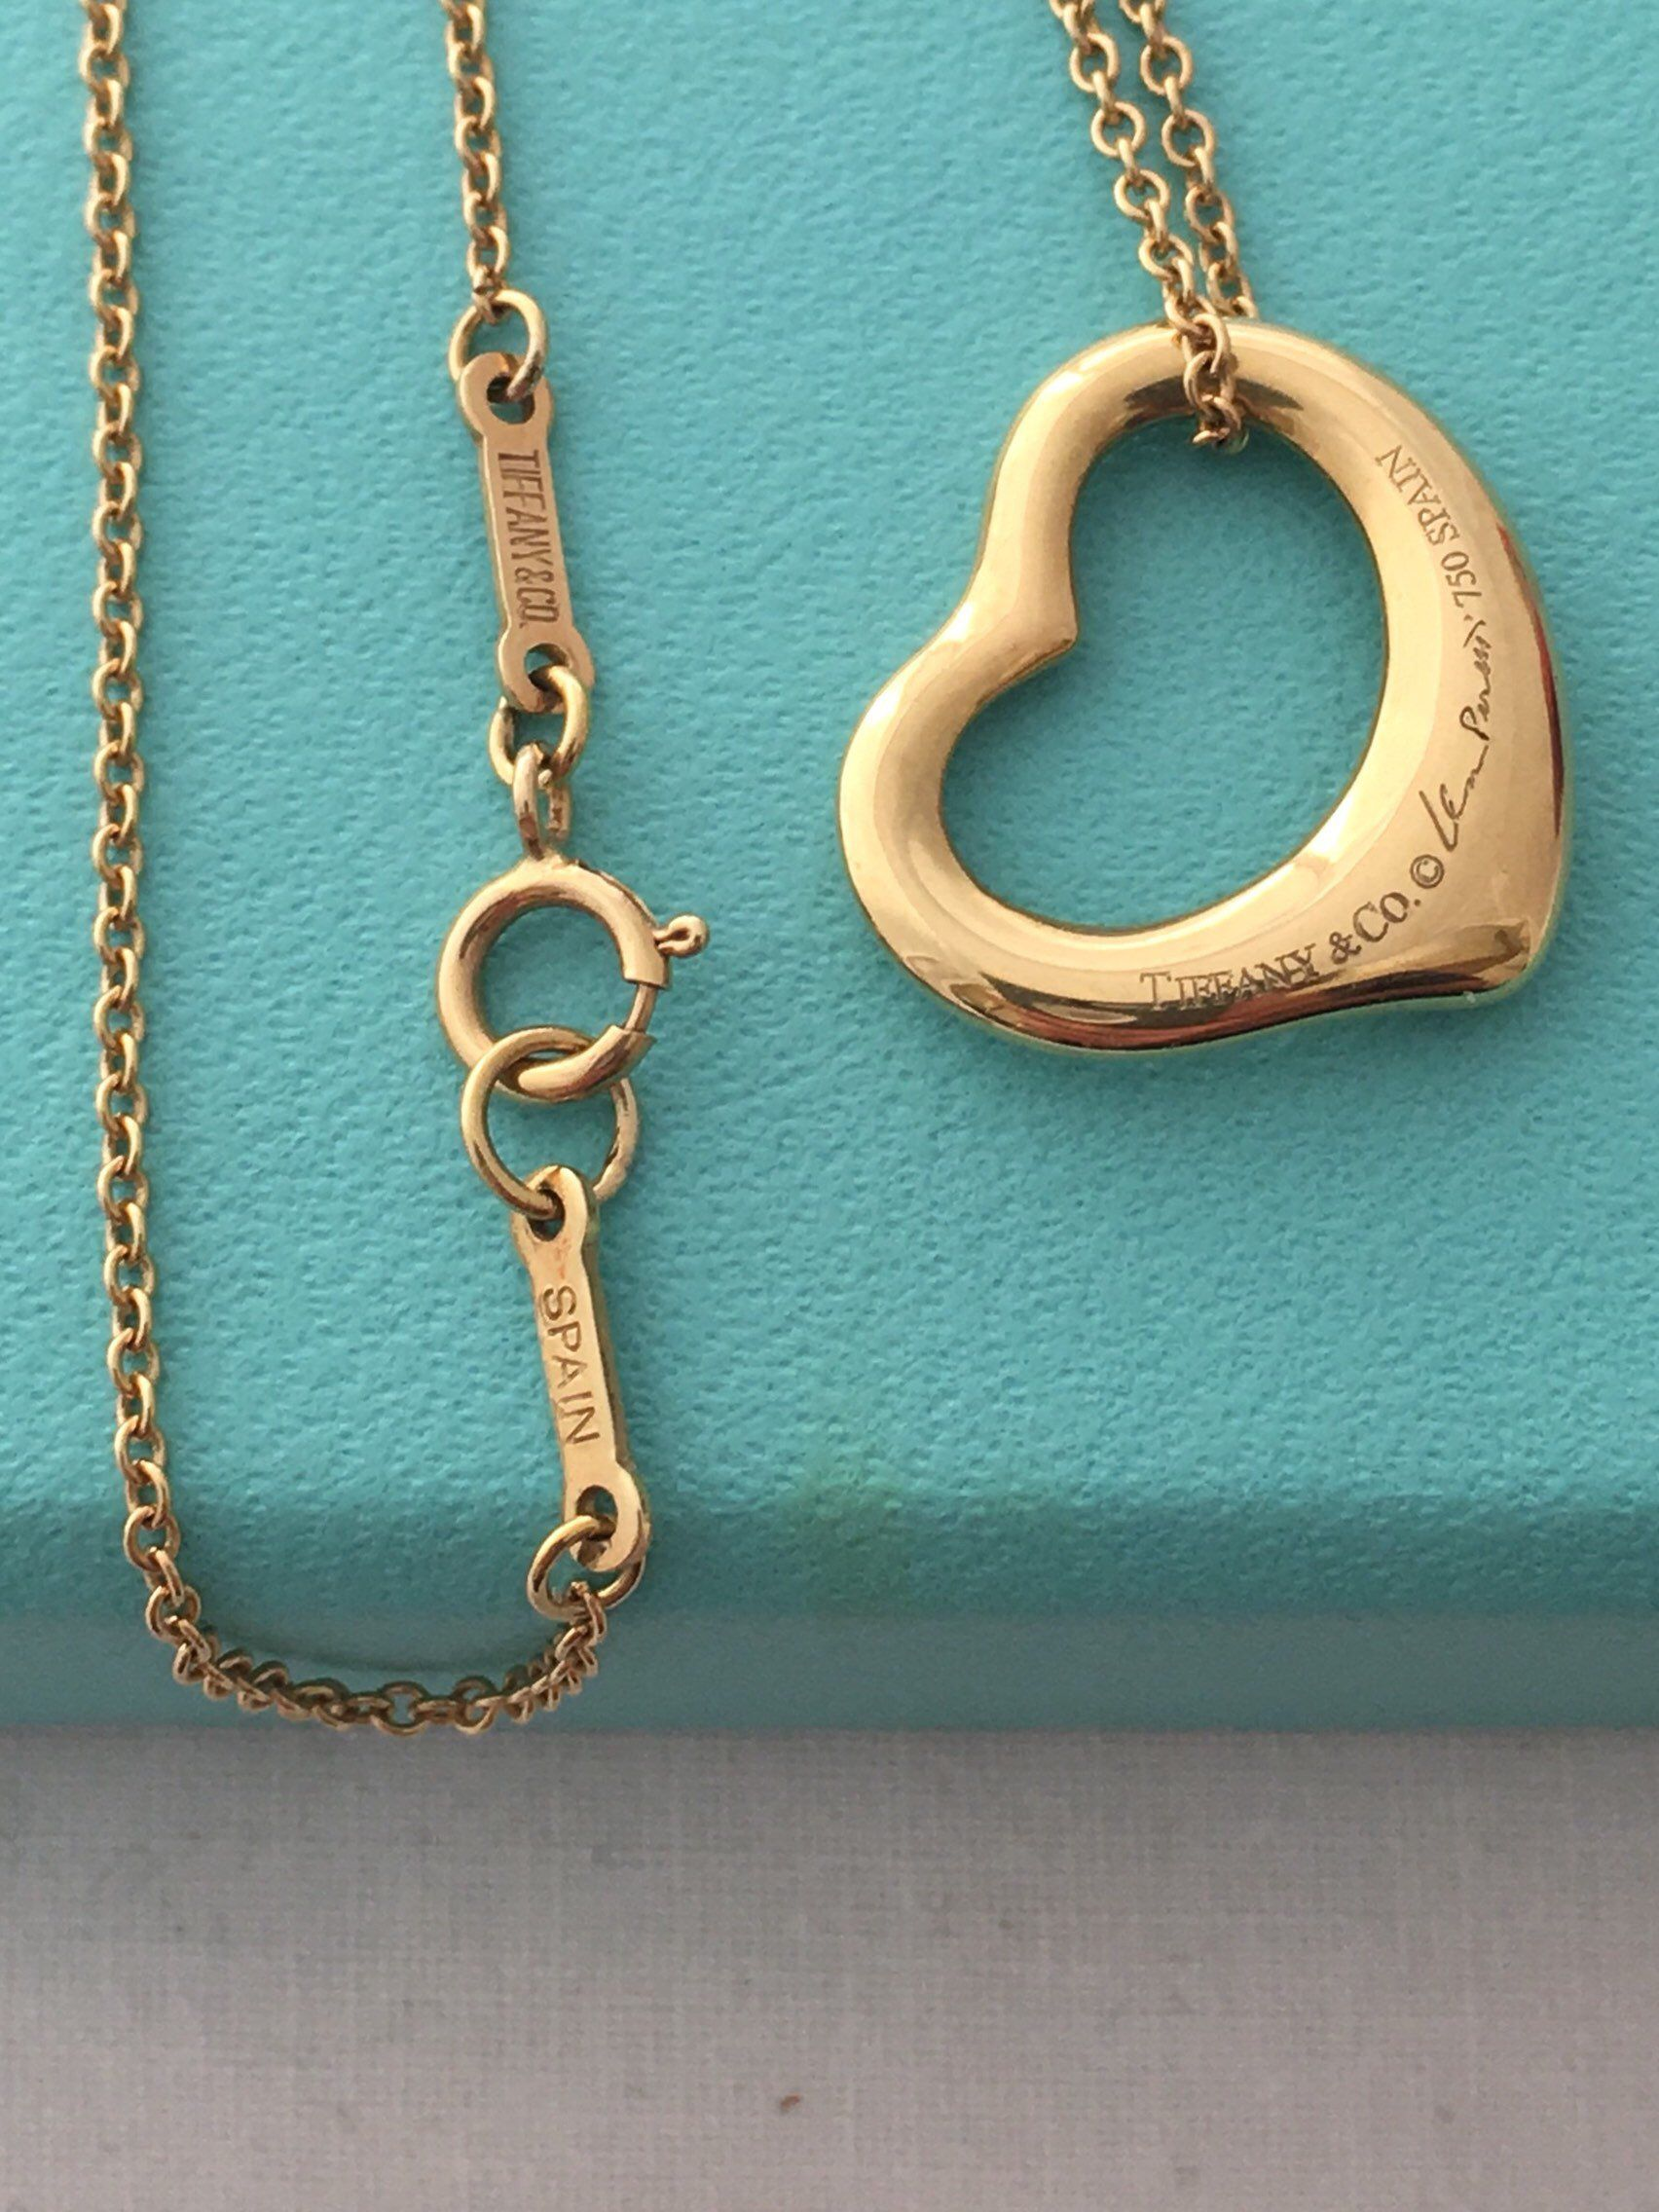 e81a57ac2 Excited to share the latest addition to my #etsy shop: 18K Gold Tiffany and  Co Open Heart Pendant Necklace Elsa Peretti 18K Gold Chain 16